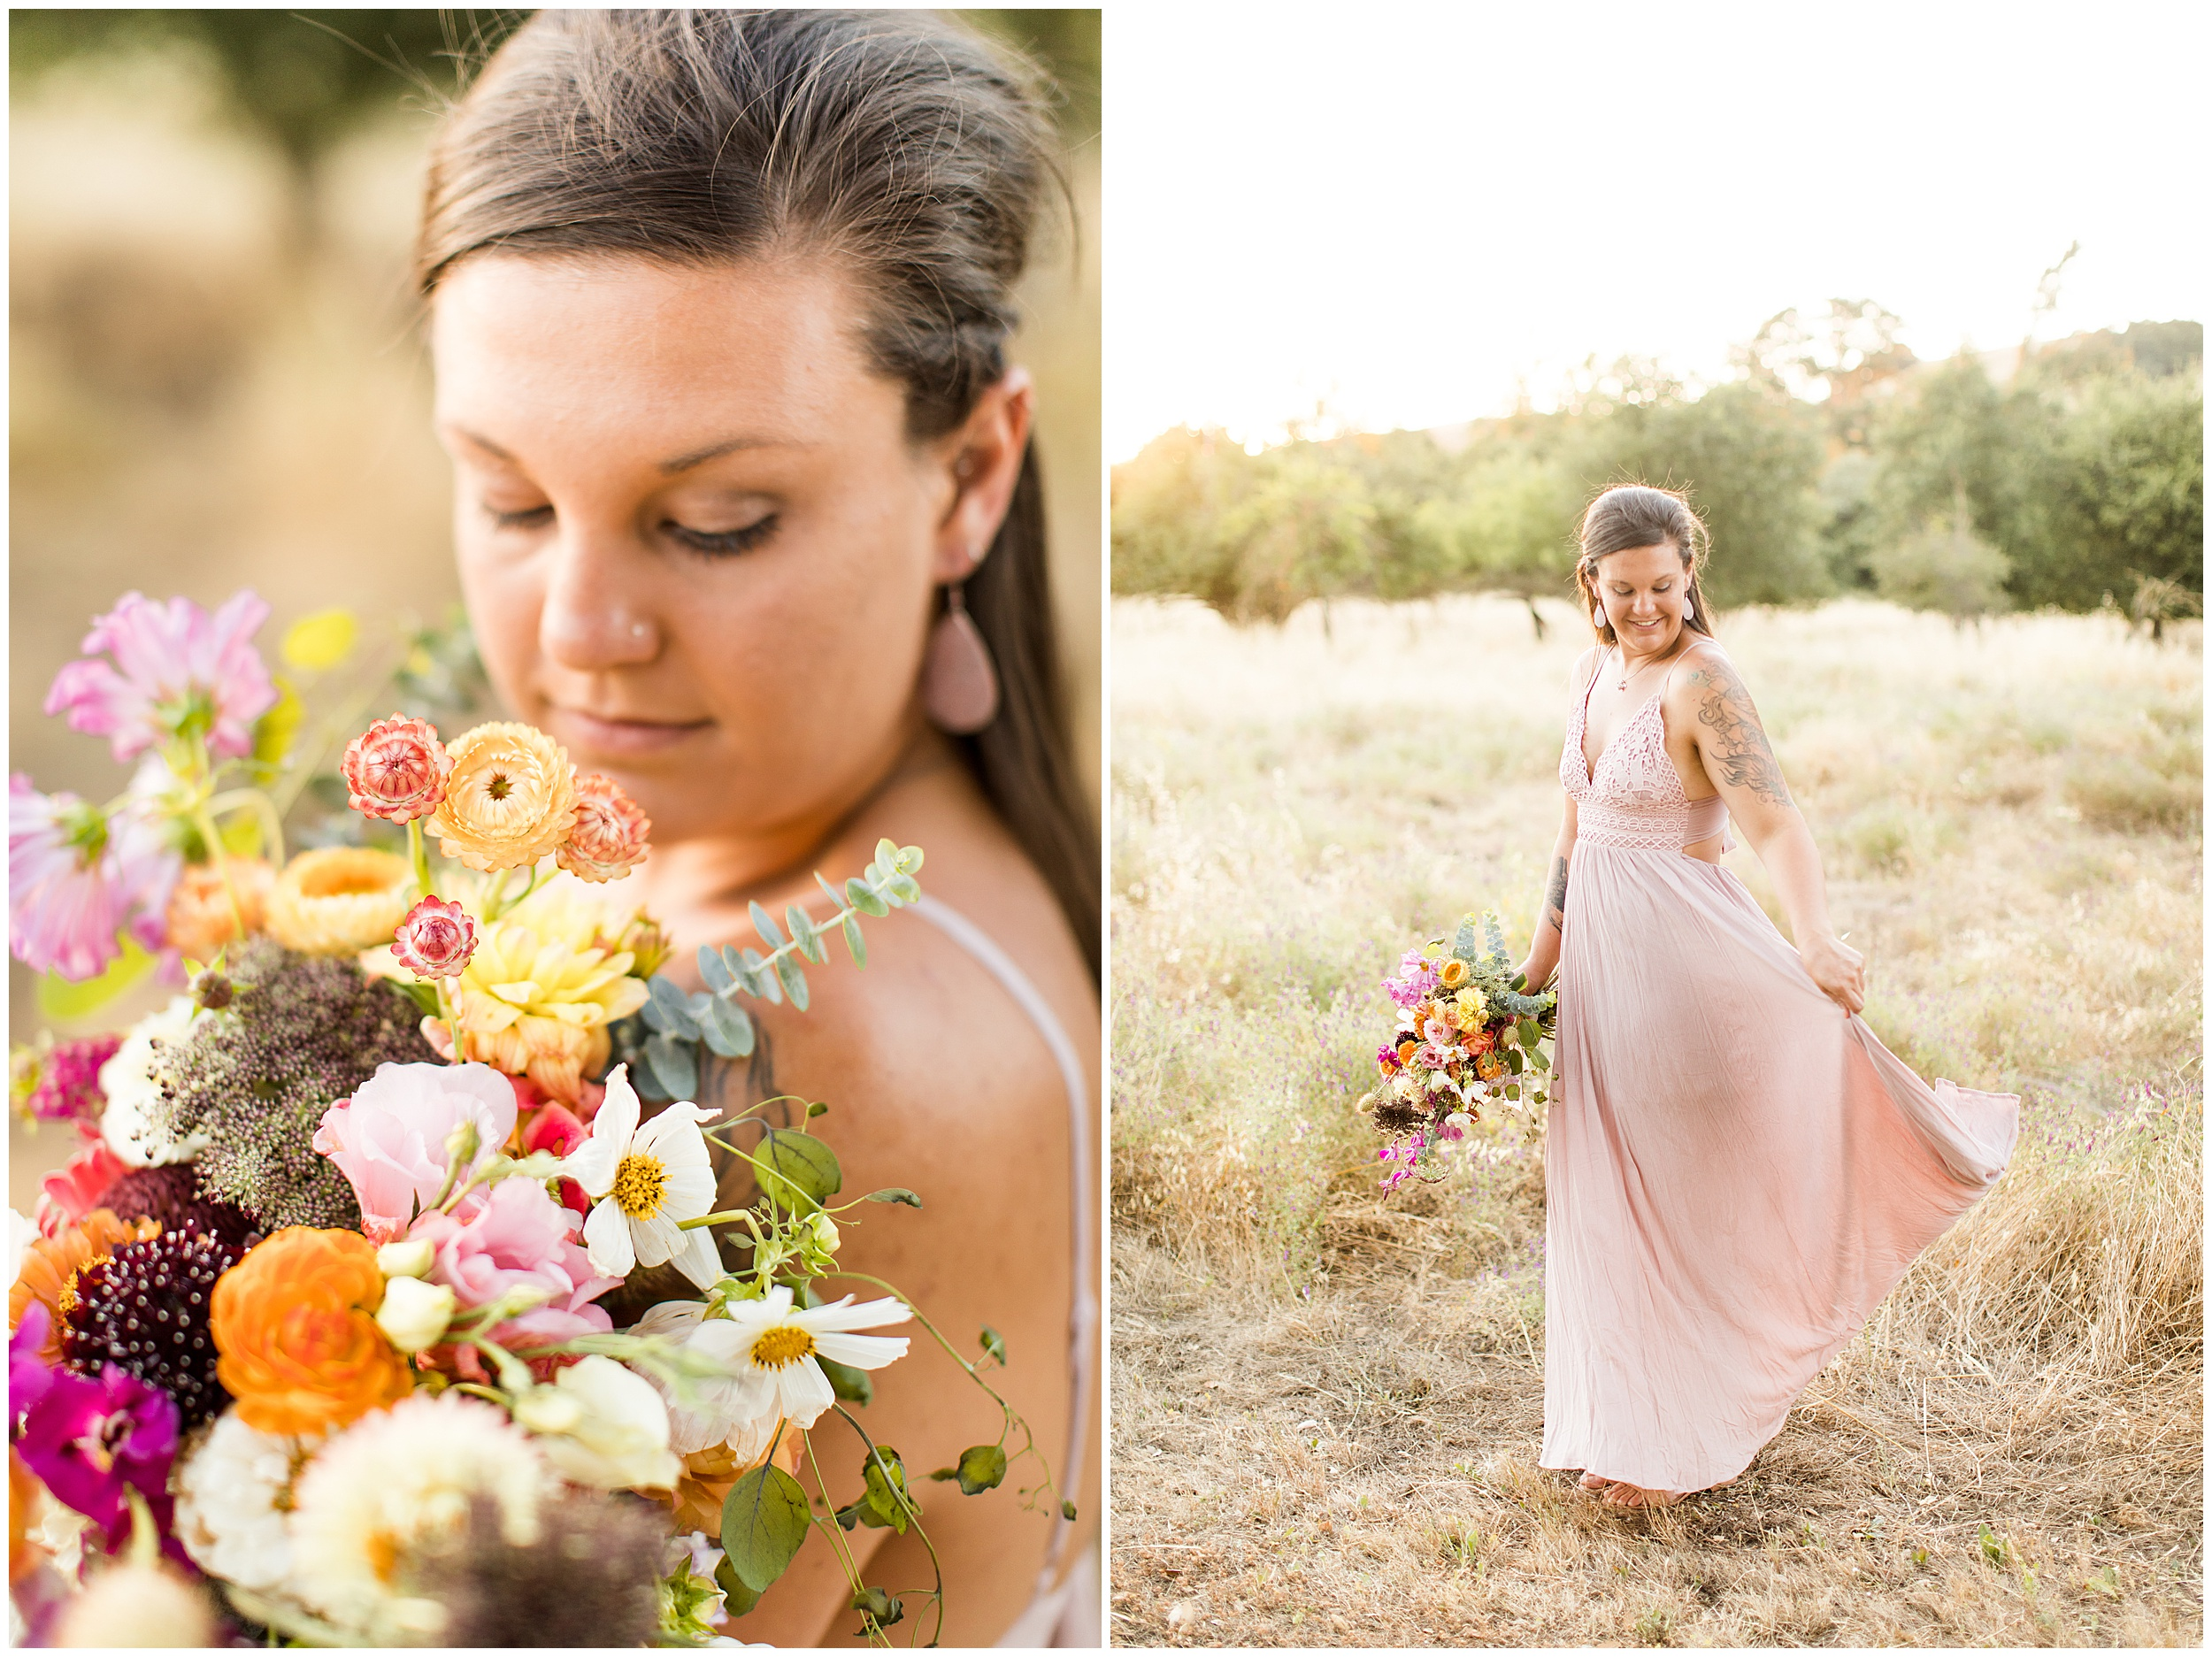 2019 bay area wedding photographer colorful florals flowers styled engagement session Angela Sue Photography_0030.jpg